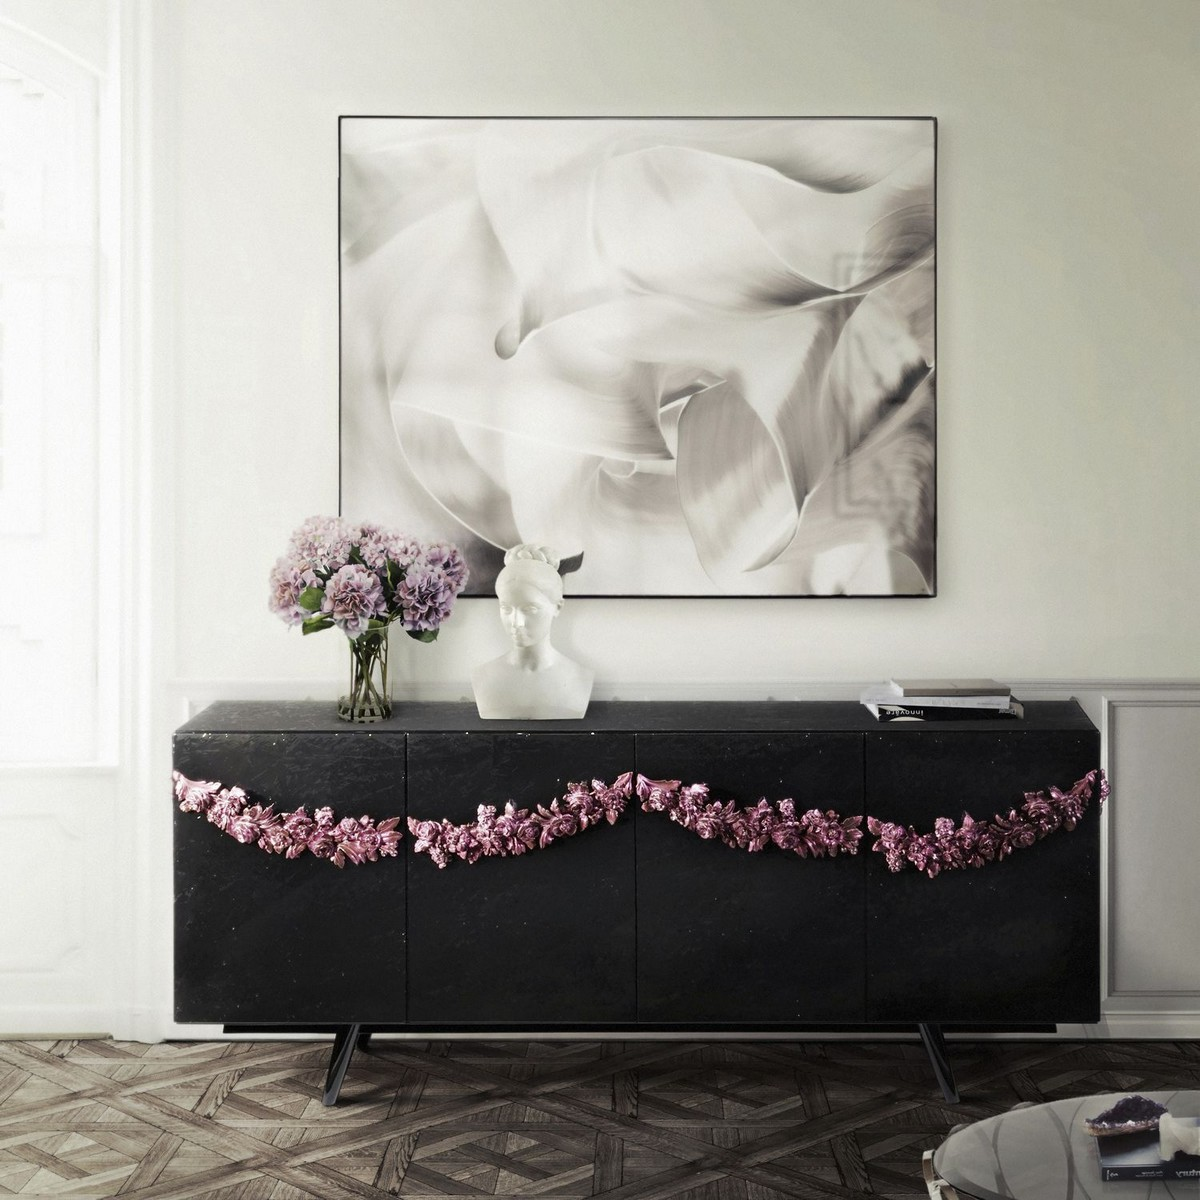 Colorful Sideboard Ideas For A Seductive Living Room Decor